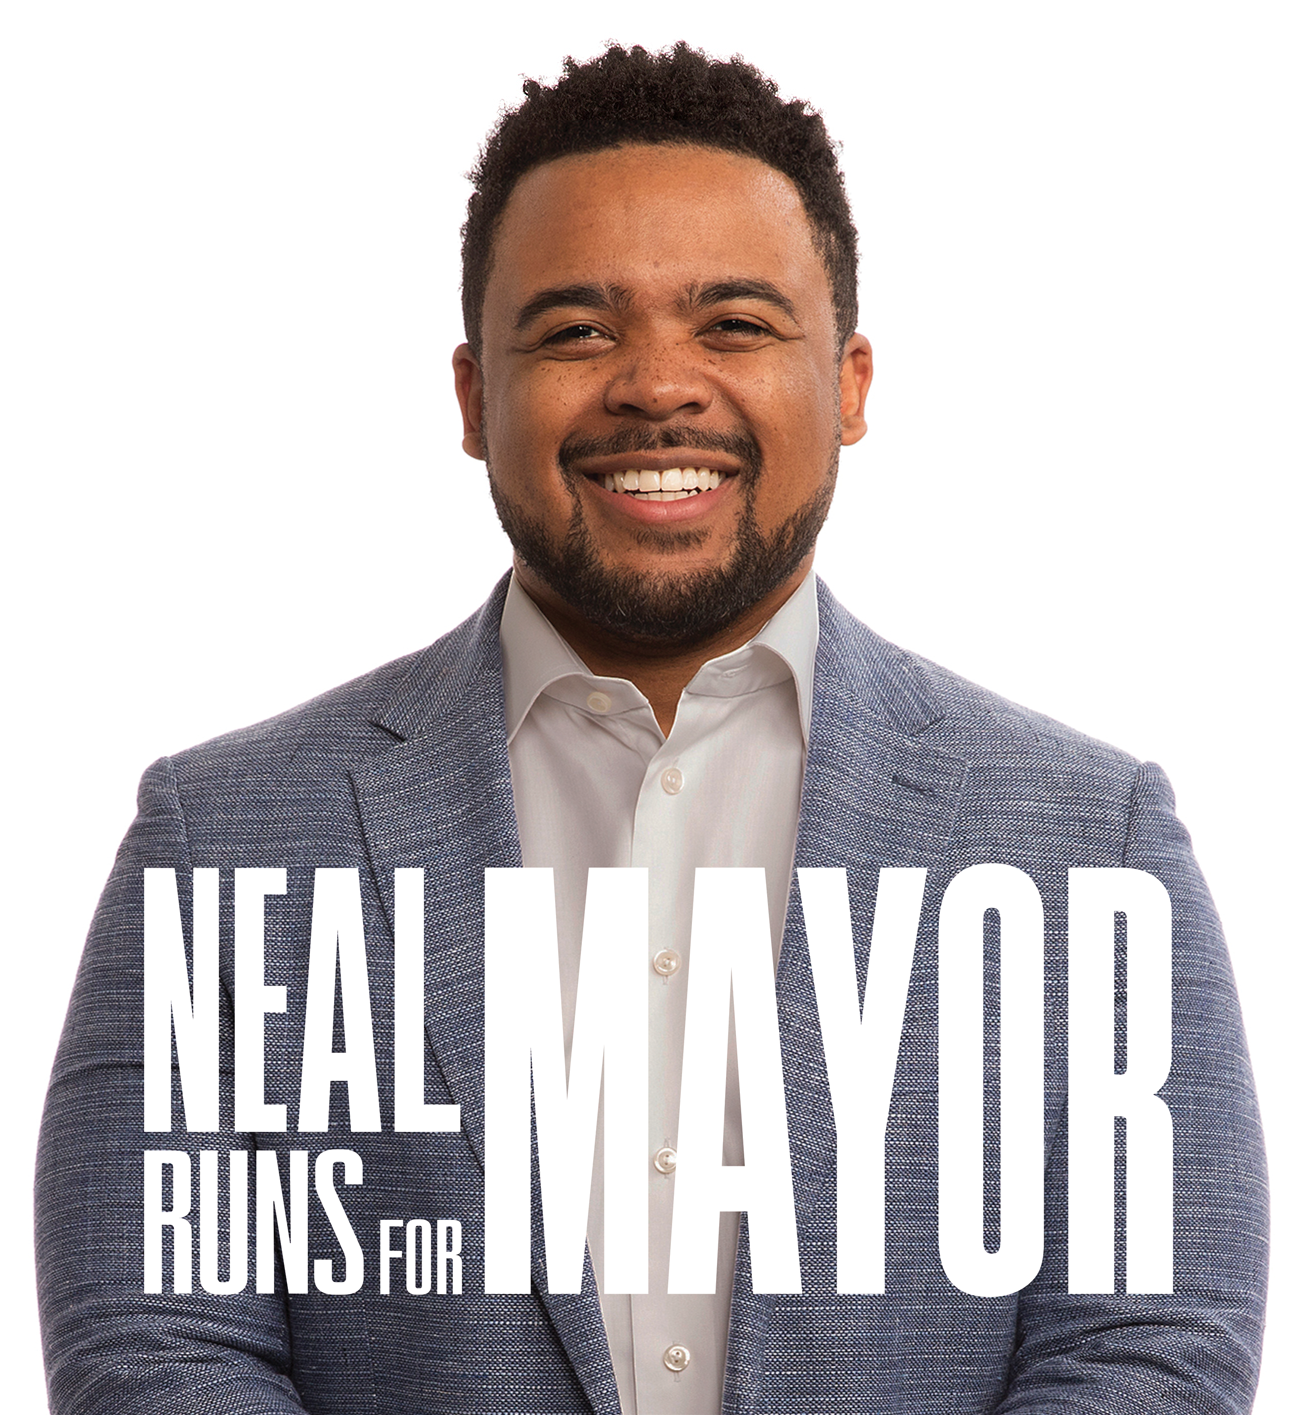 Neal Runs For Mayor